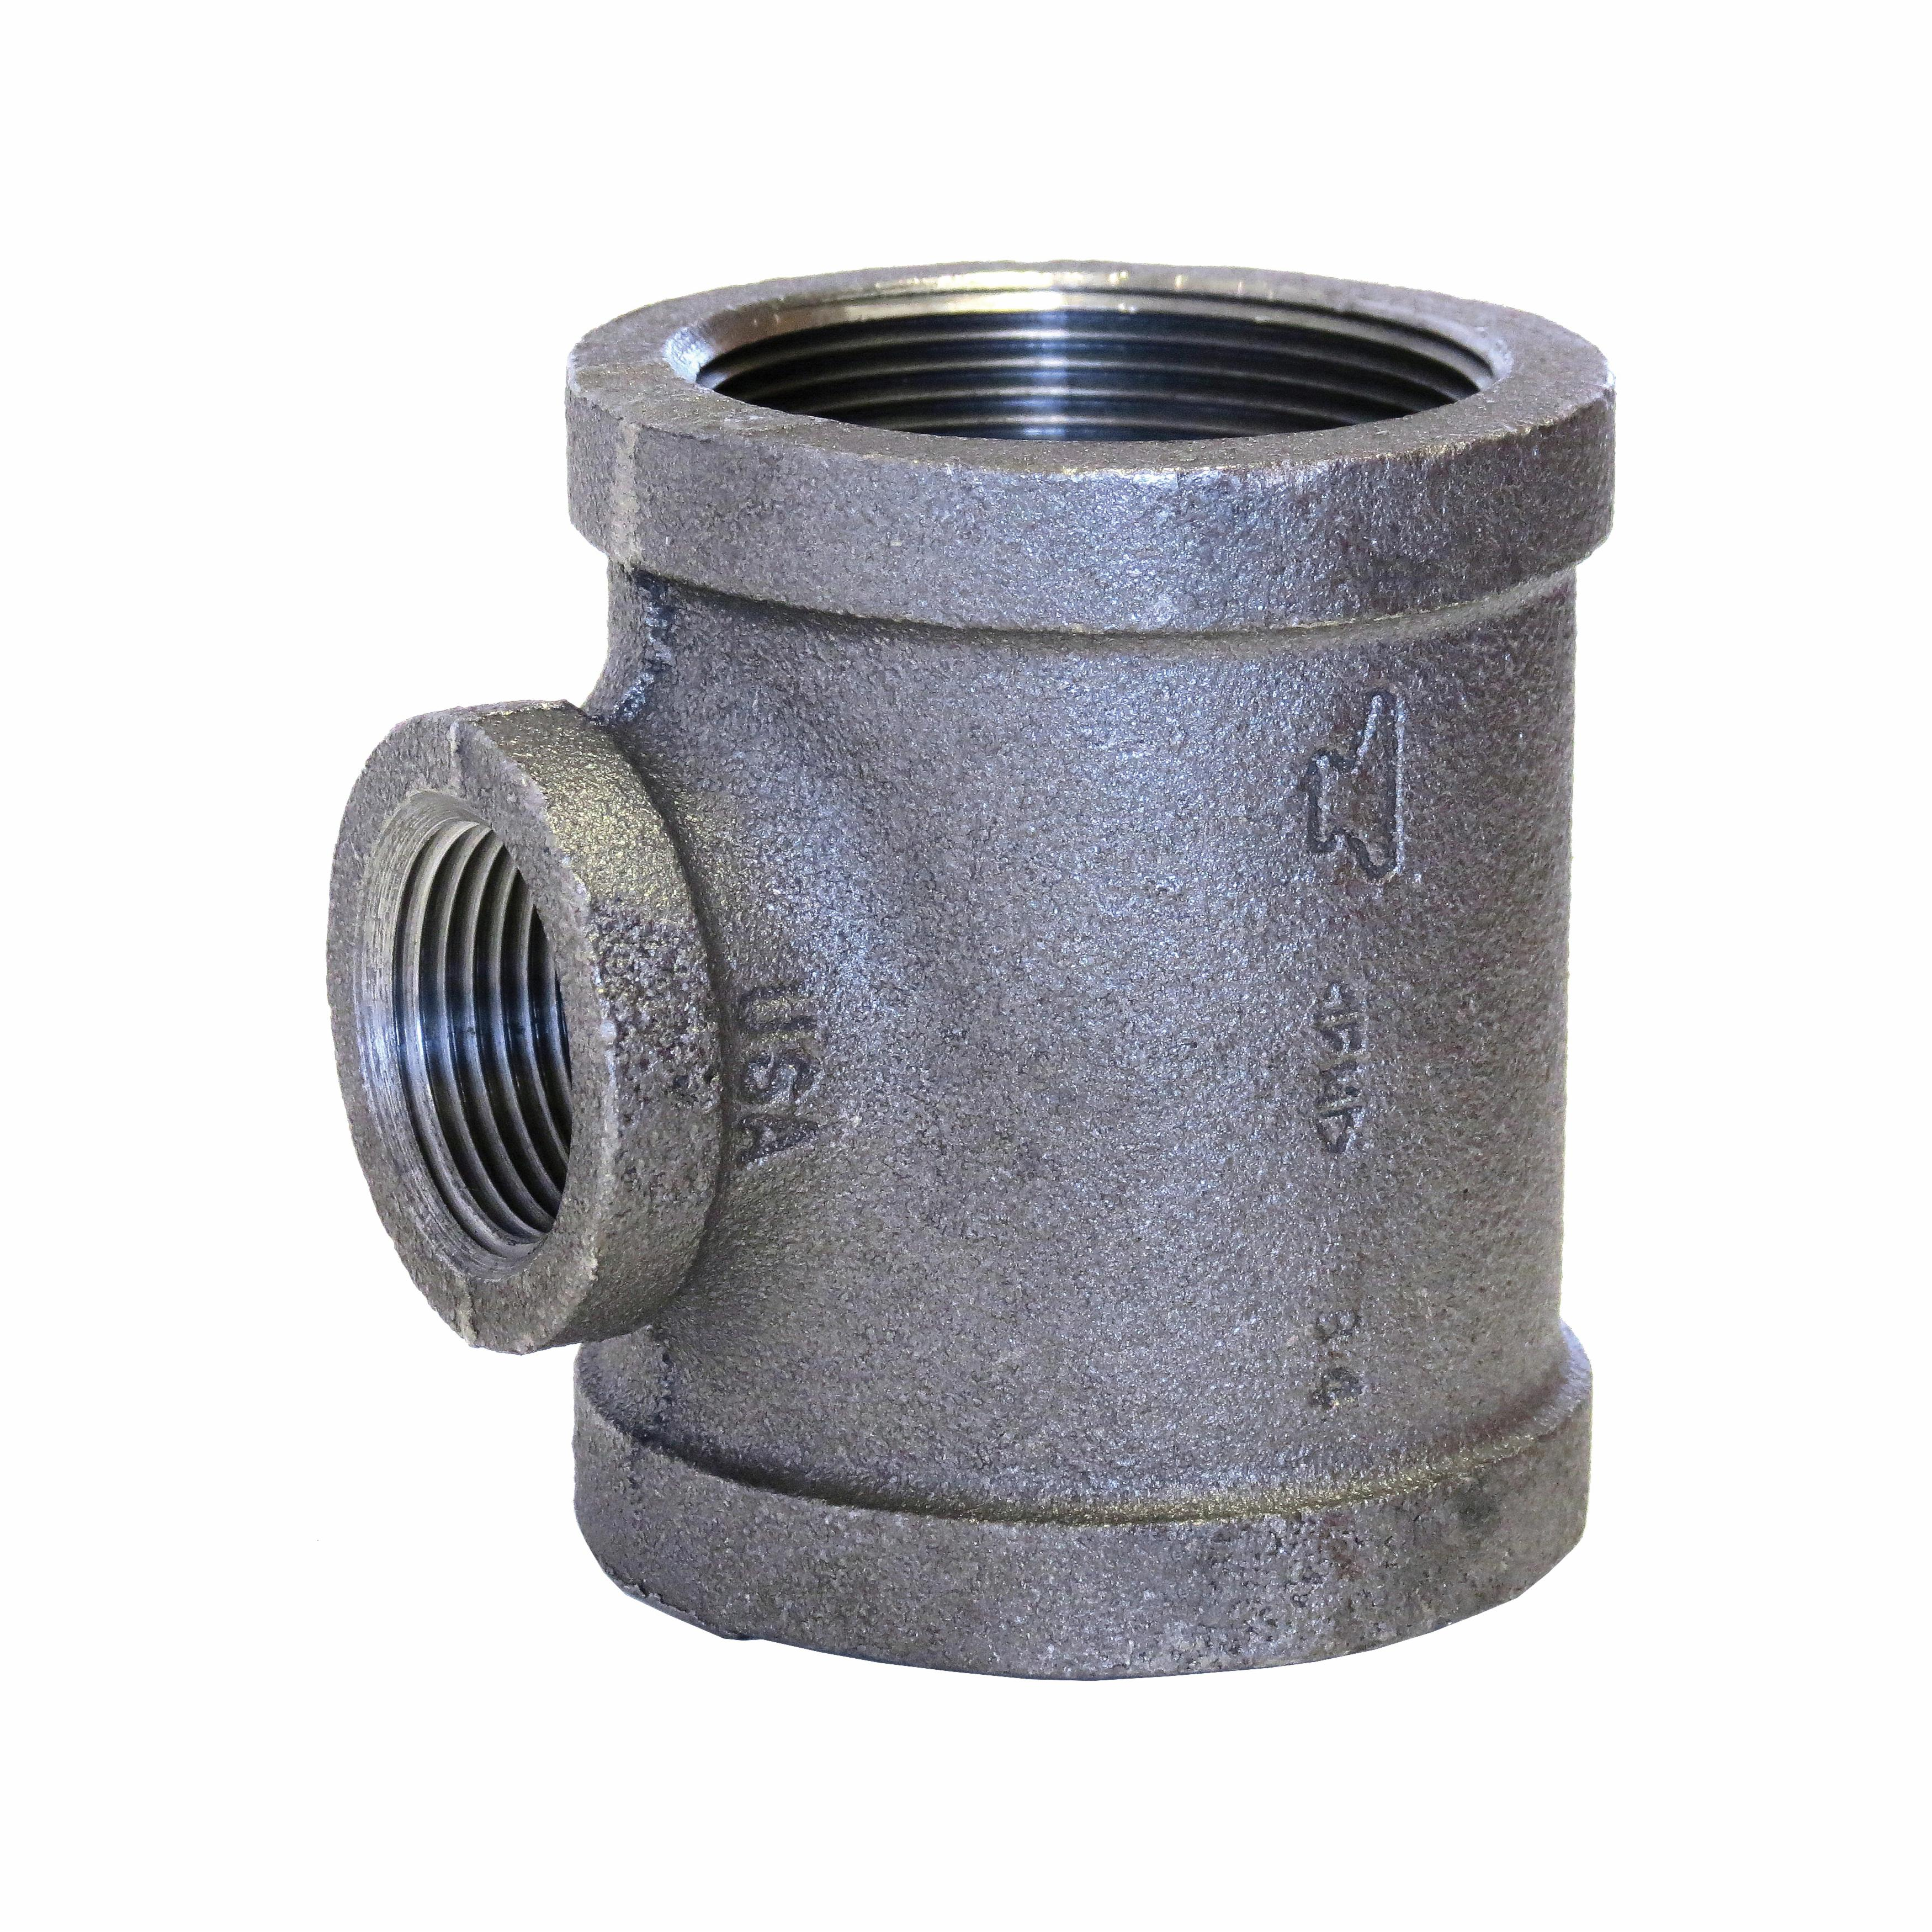 SPF/Anvil™ 0811049212 FIG 3105R Reducing Pipe Tee, 2 x 2 x 1 in, FNPT, 150 lb, Malleable Iron, Galvanized, Import